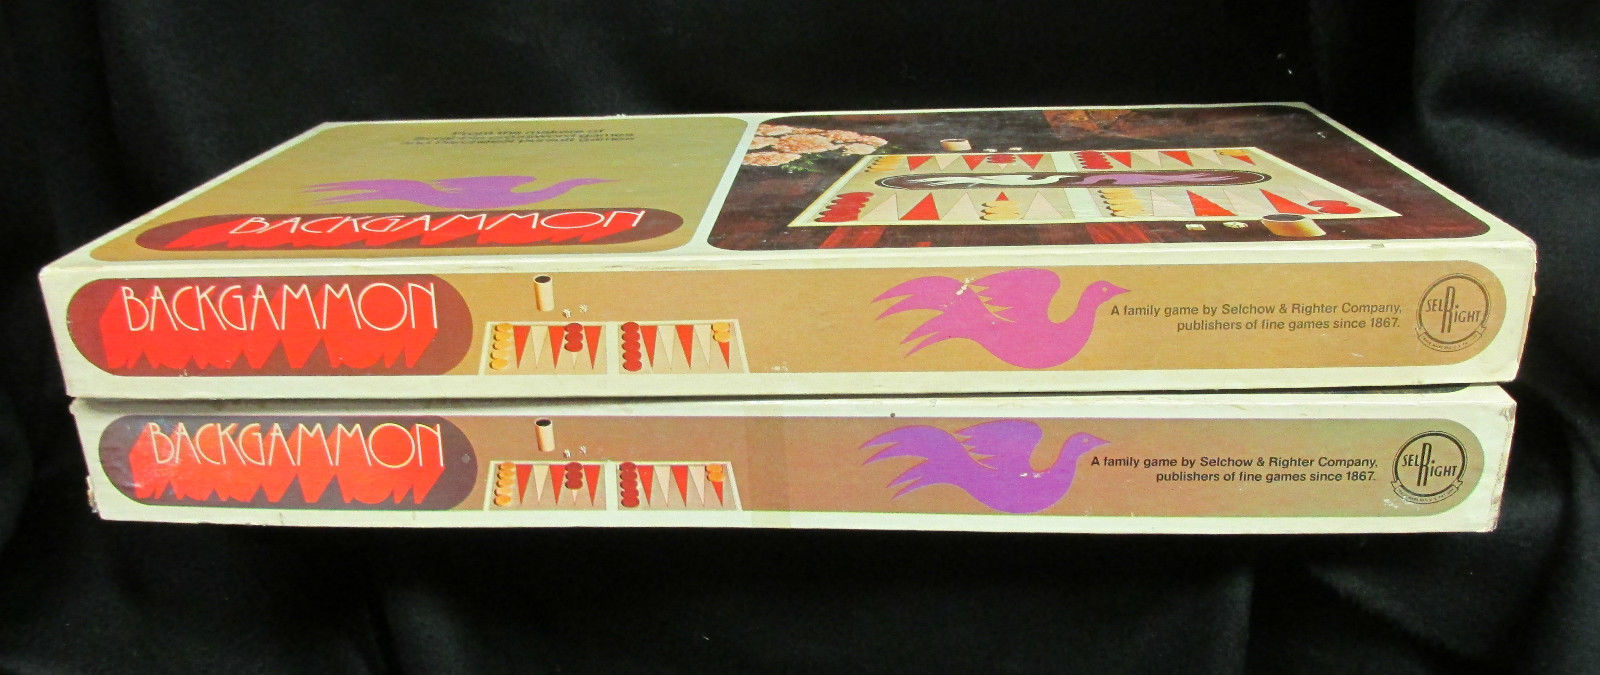 Backgammon Selchow & Righter 1975 S&R Games and similar items